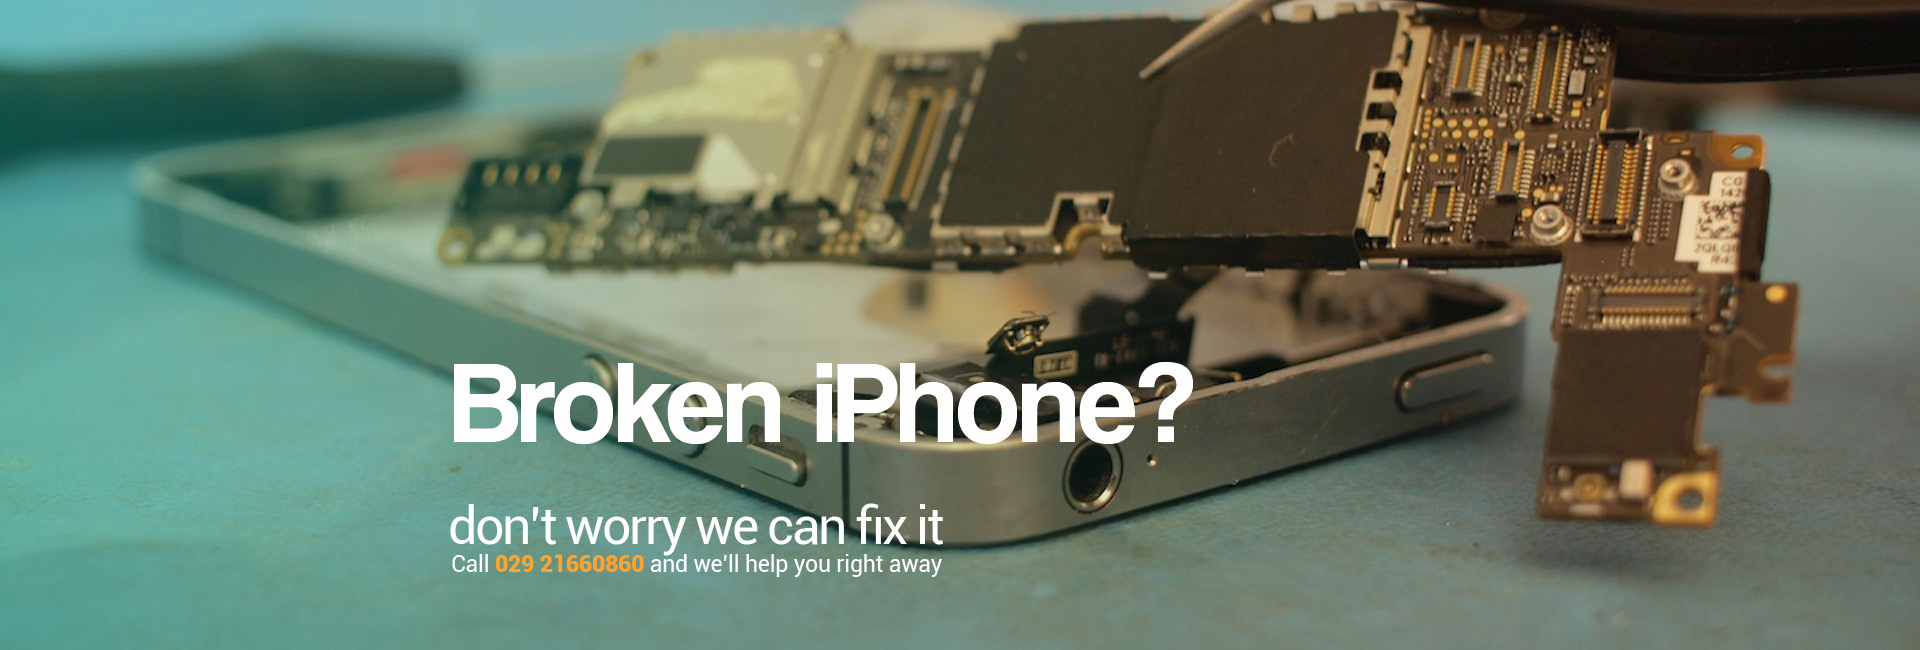 Broken iPhone? don't worry we can fix it.  Call 029 21660860 and we'll help you right away.